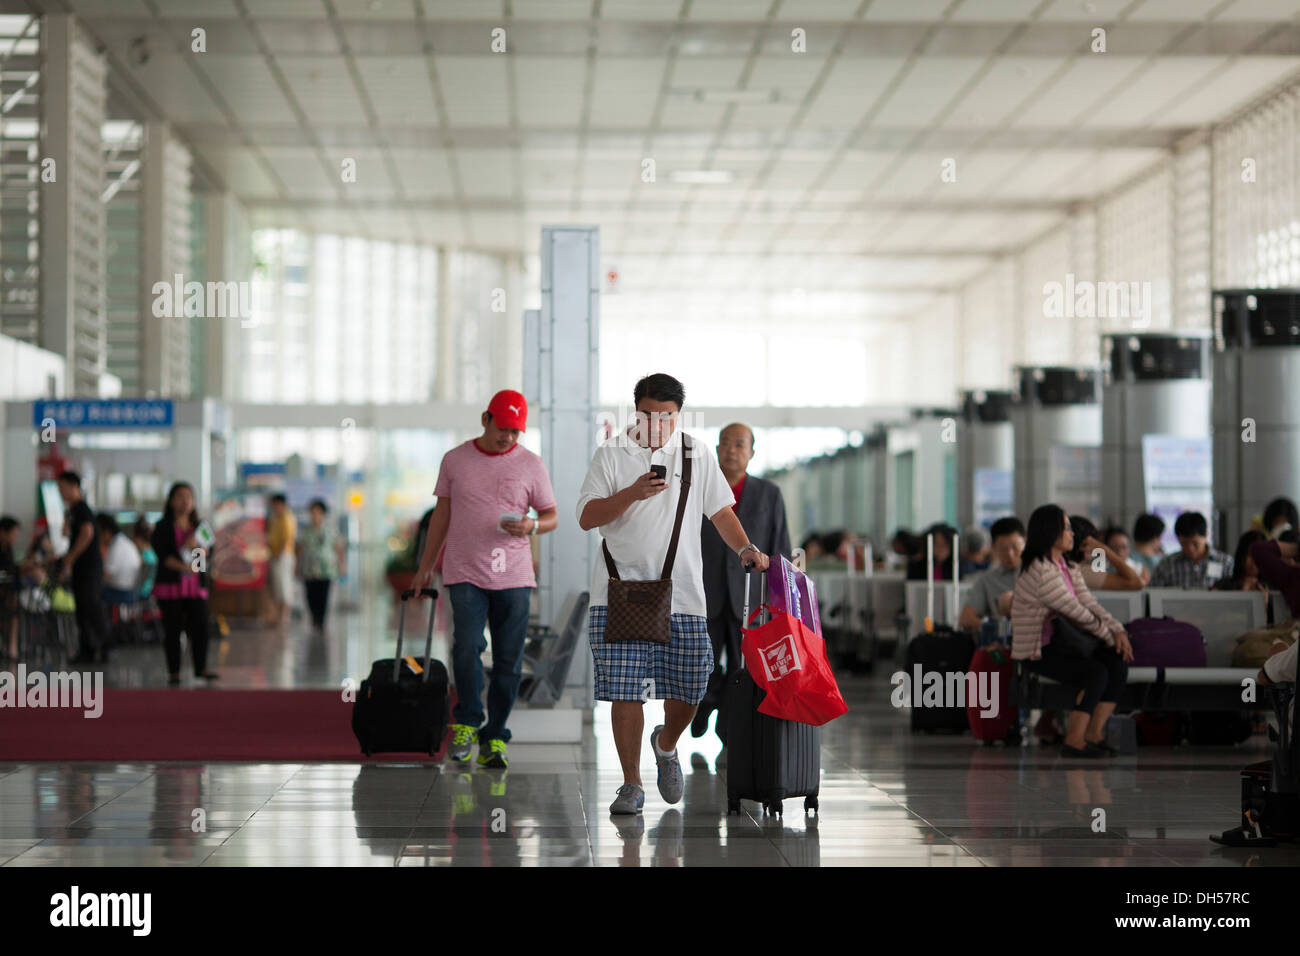 Travelers walk to their gates at Ninoy Aquino International Airport's Terminal 2 in Manila, Philippines. - Stock Image